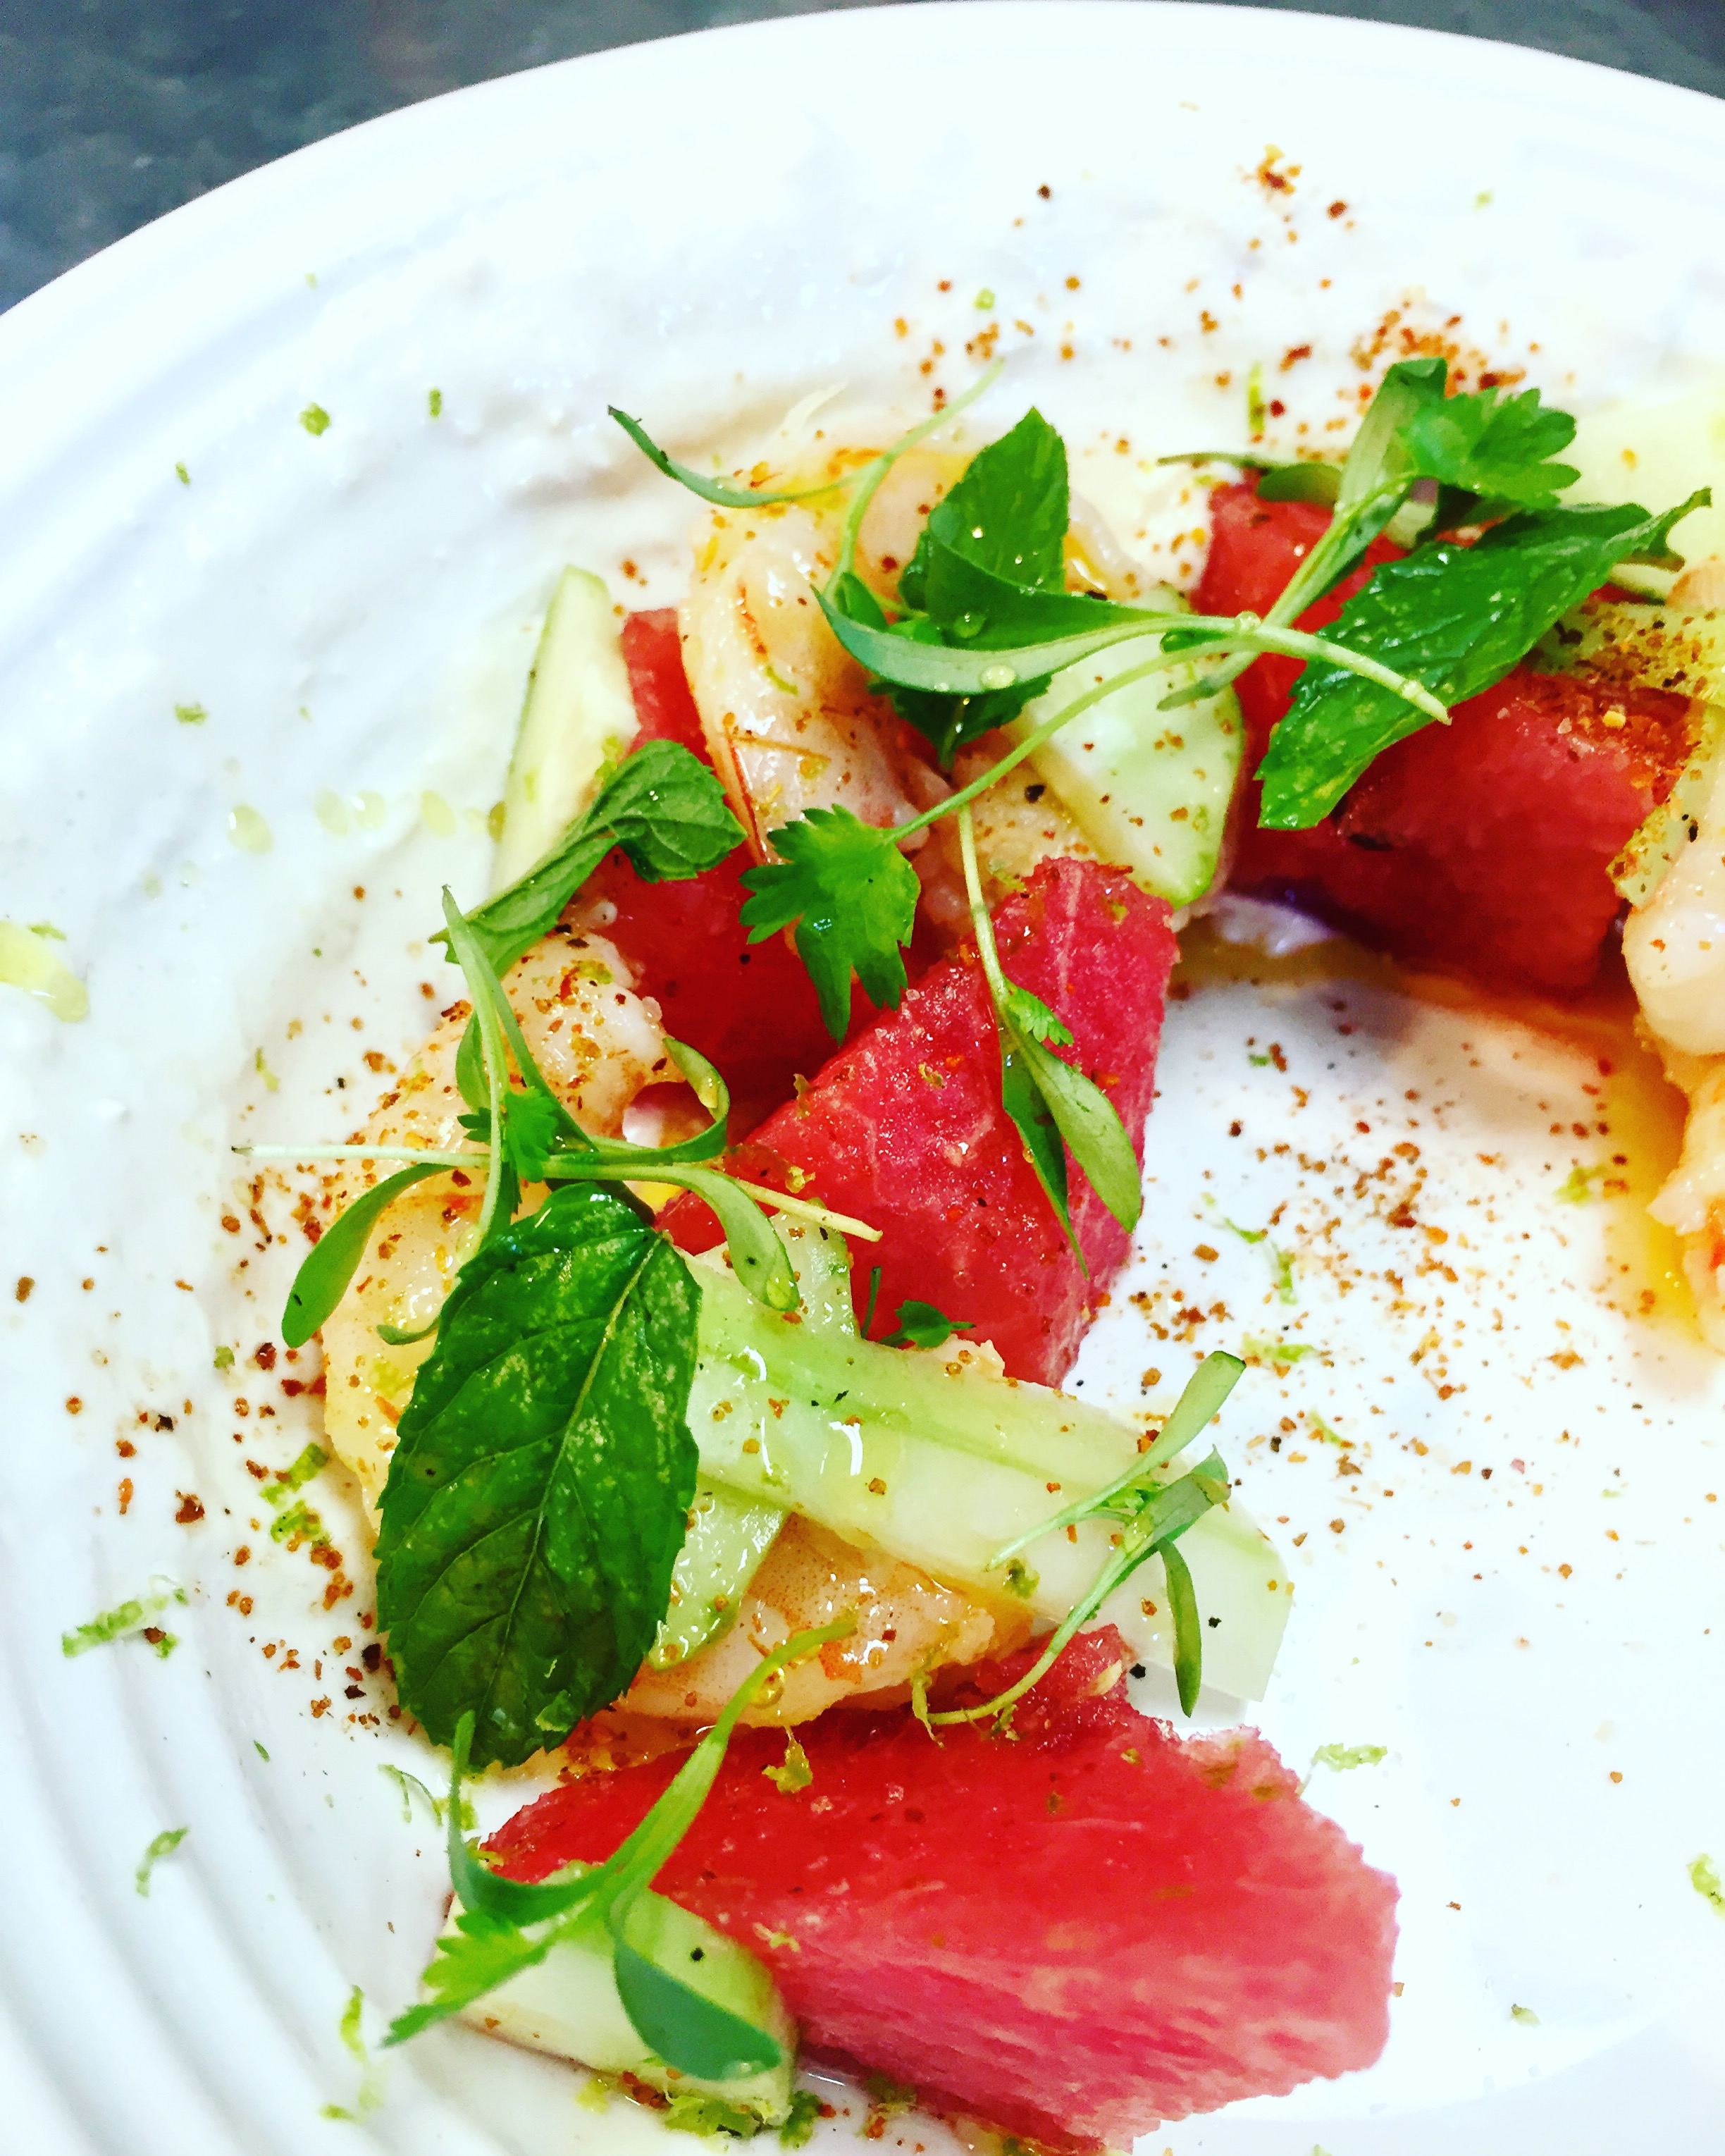 watermelon, Louisiana pickled shrimp, cucumber, sweet corn, labneh, tajin, and keffir lime